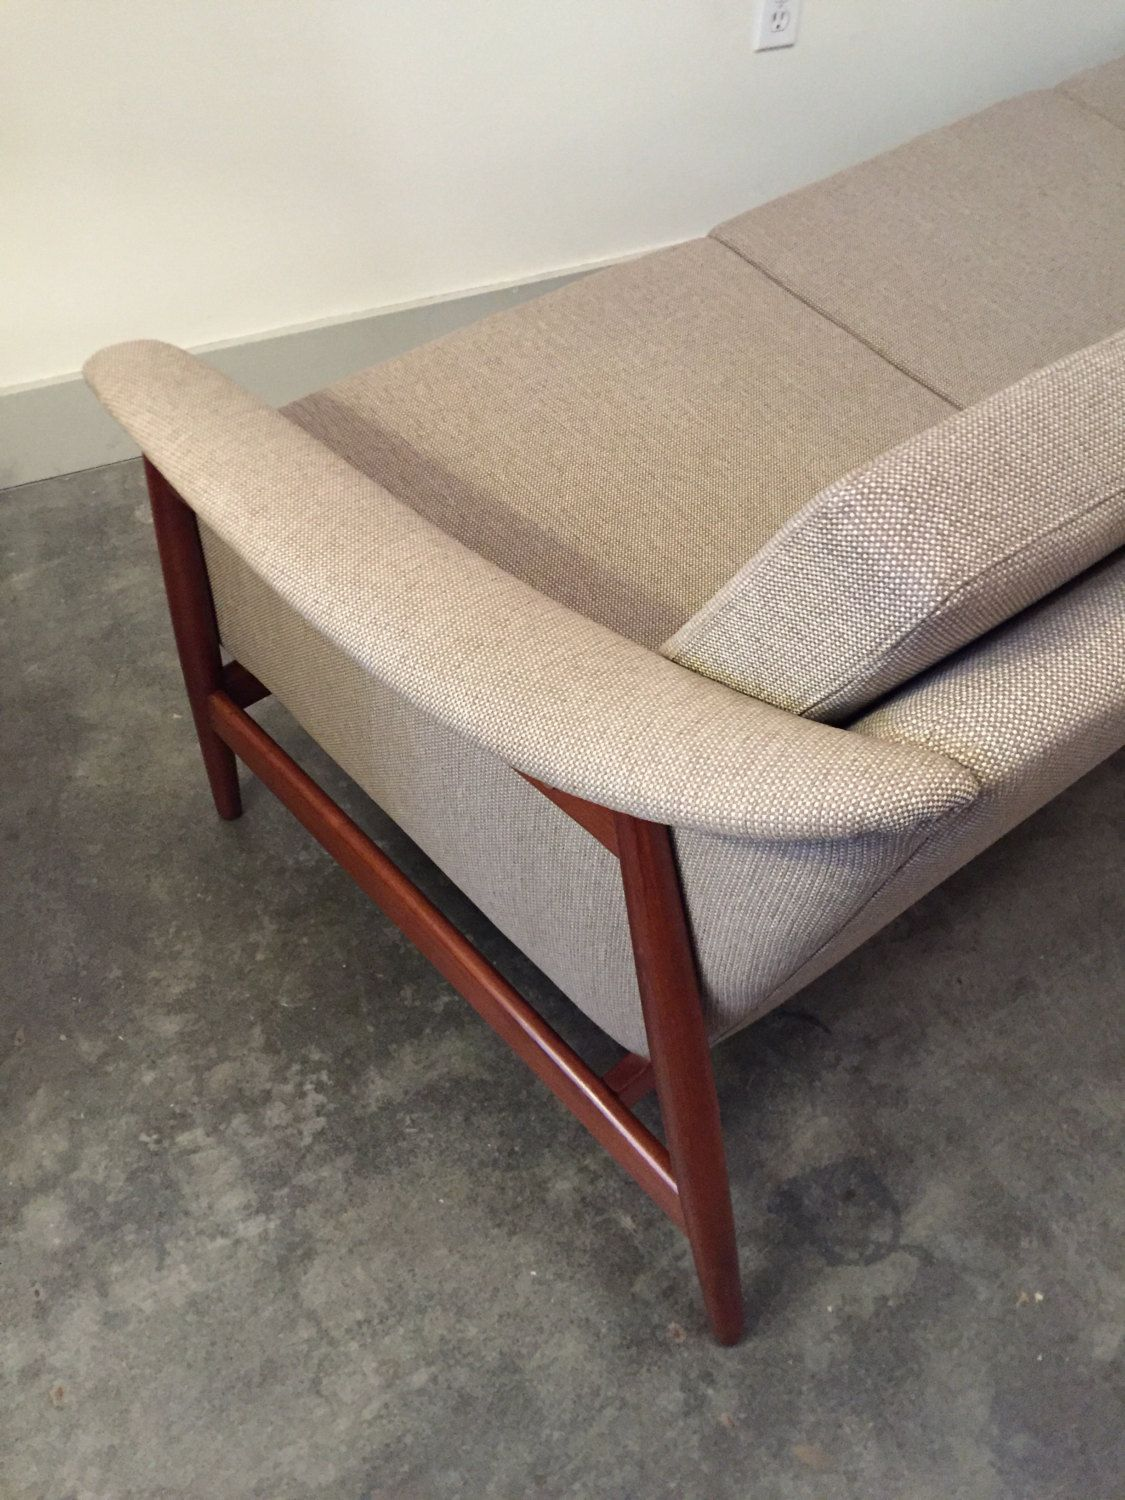 Handsome Fully Restored Danish Sofa By Alf Svensson For Dux. The Sofa Was  Just Reupholstered